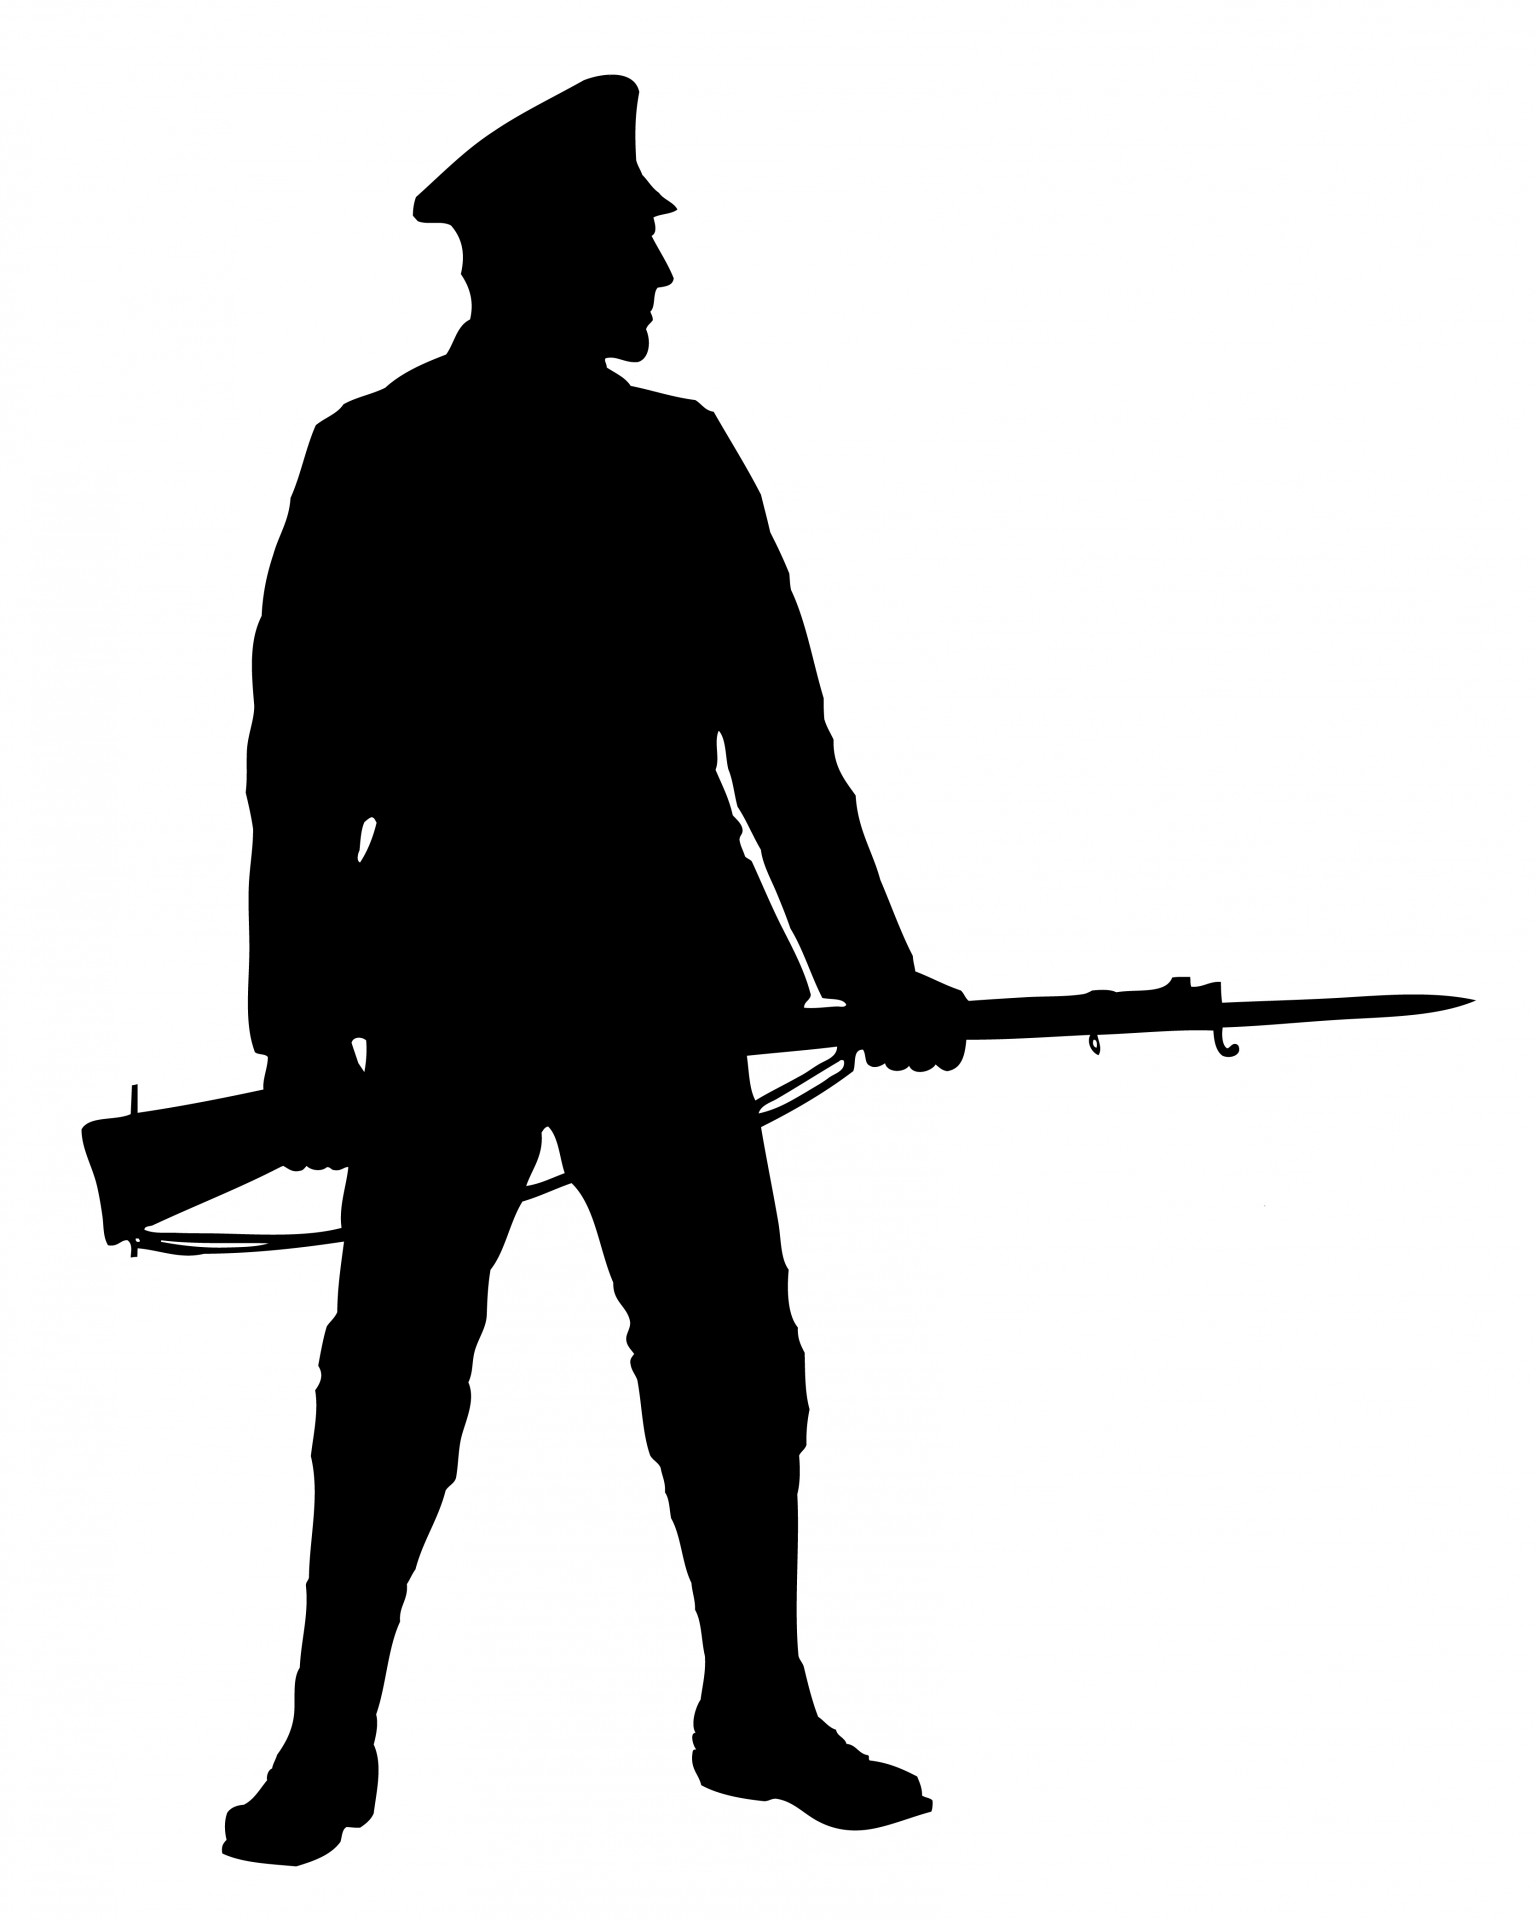 army silhouette army clipart silhouette army silhouette transparent free army silhouette